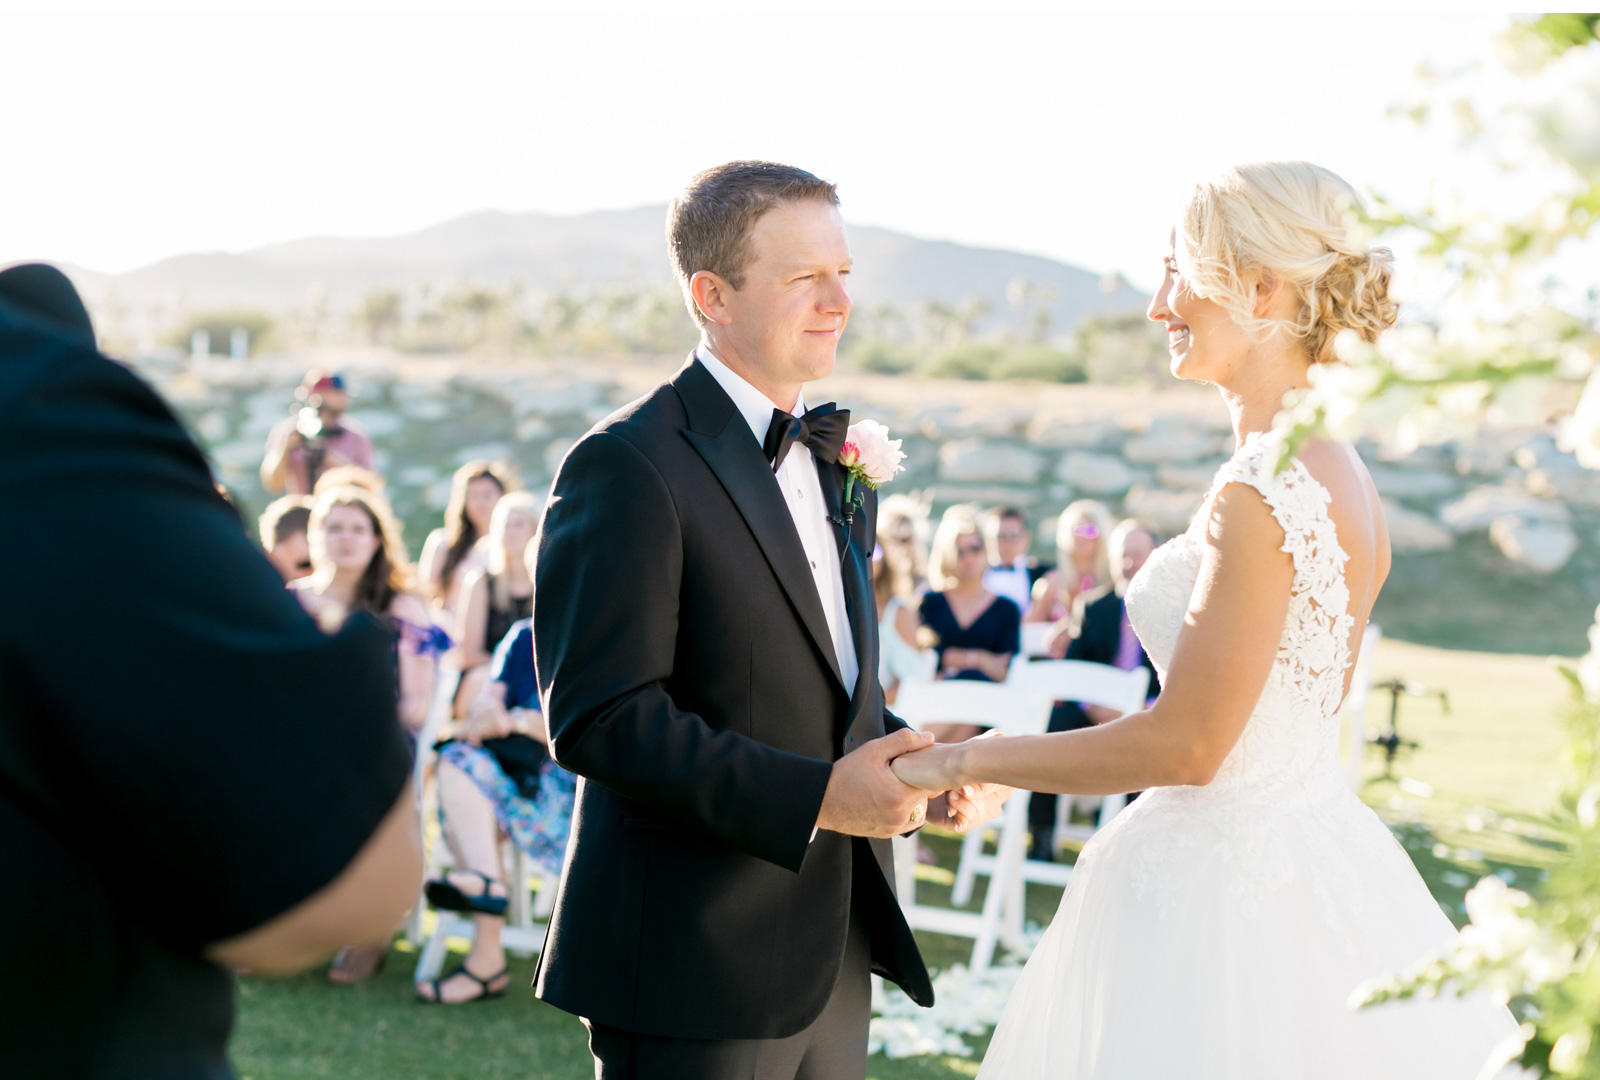 Style-Me-Pretty-Cabo-Wedding-Natalie-Schutt-Photography_06.jpg